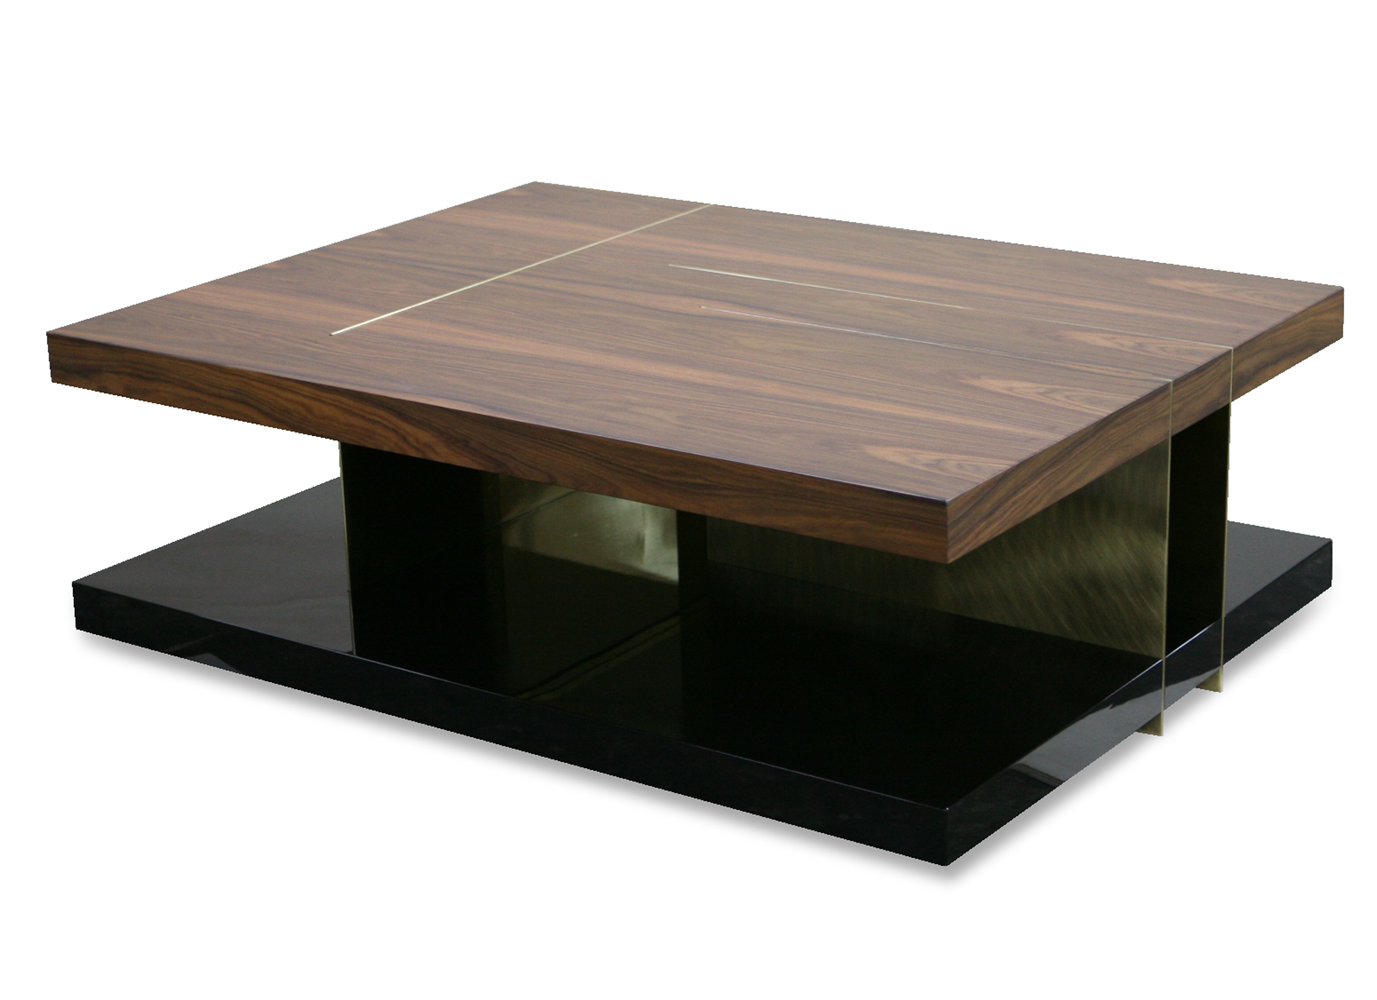 center table zoom 3510 x 2303 jpeg 449kb center table 2 pouffs 500 x ...